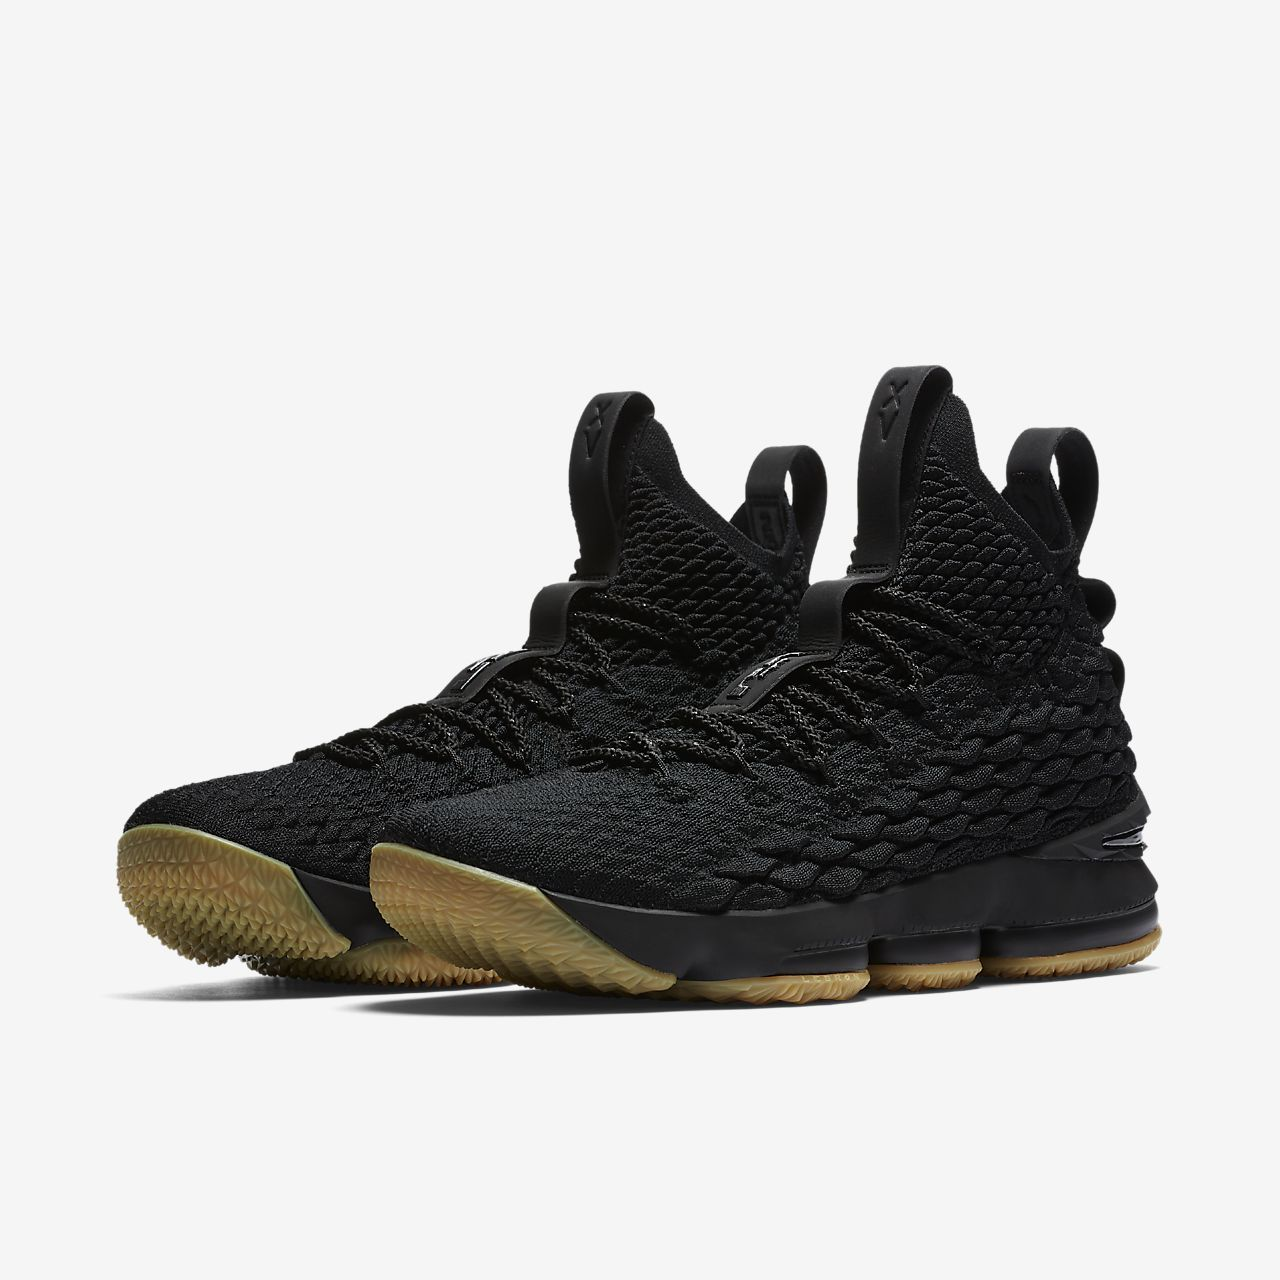 LeBron 15 Basketball Shoe